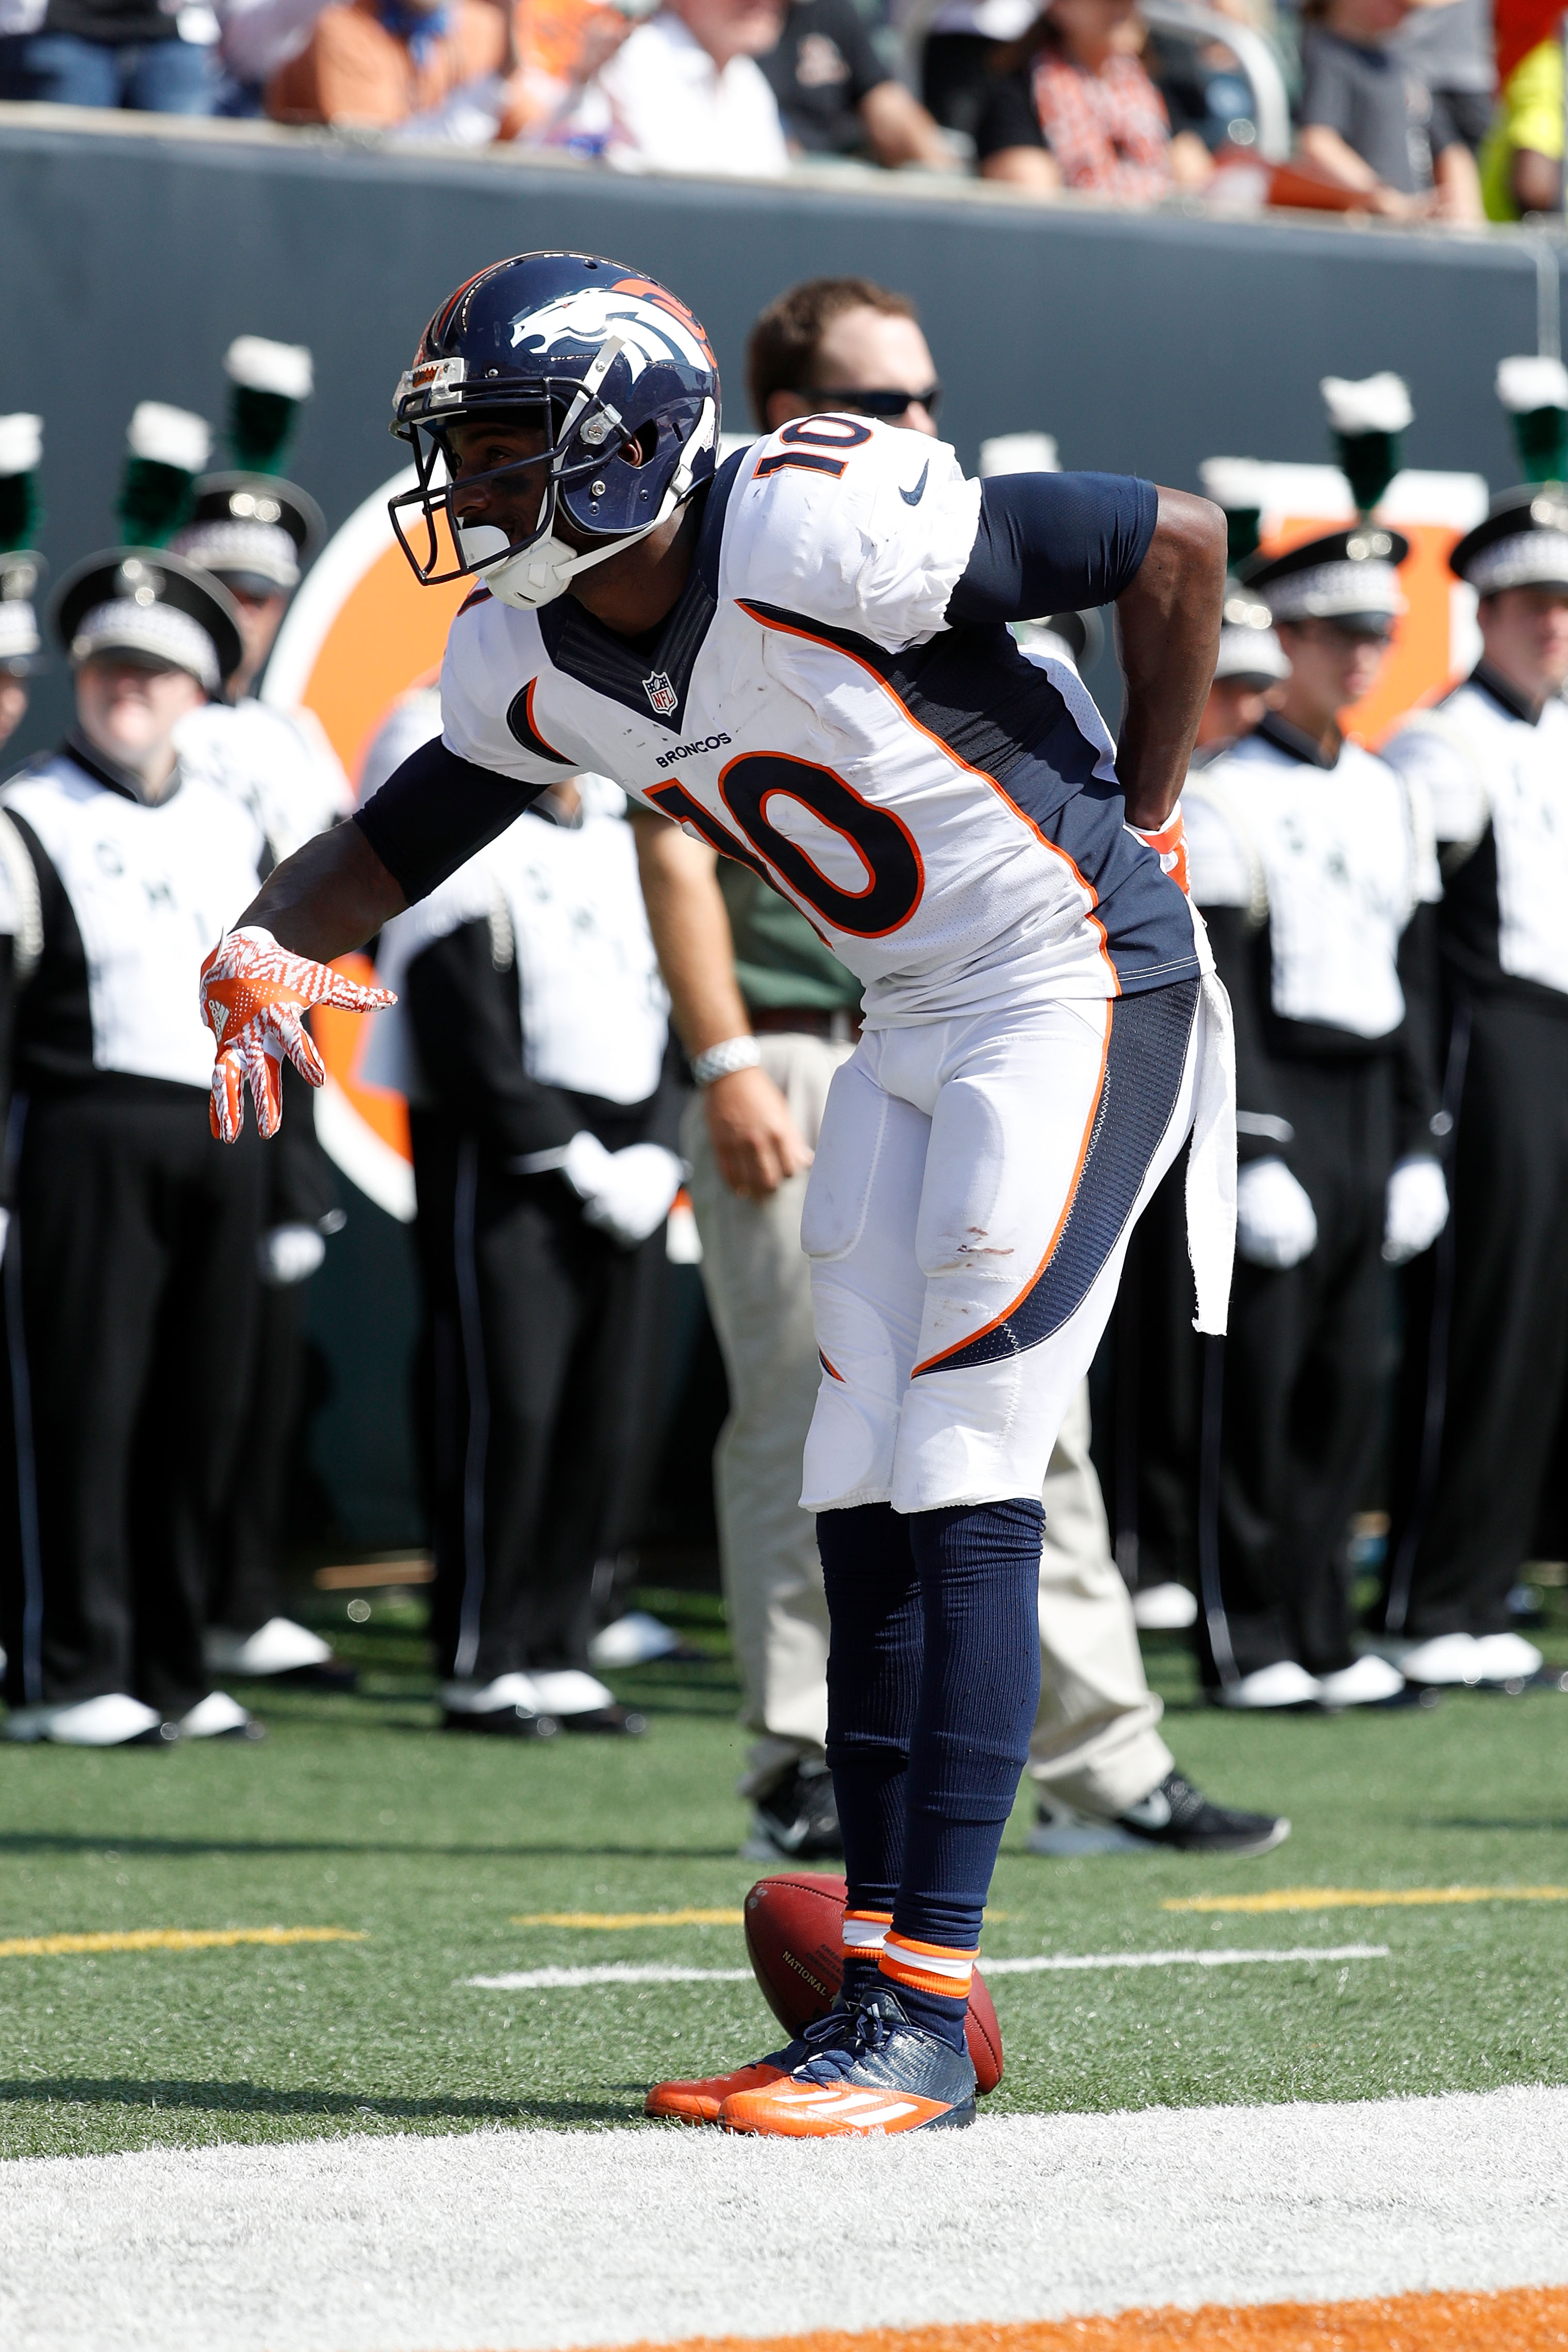 CINCINNATI, OH - SEPTEMBER 25: Emmanuel Sanders #10 of the Denver Broncos celebrates after scoring a touchdown during the second quarter of the game against the Cincinnati Bengals at Paul Brown Stadium on September 25, 2016 in Cincinnati, Ohio. (Photo by Joe Robbins/Getty Images)